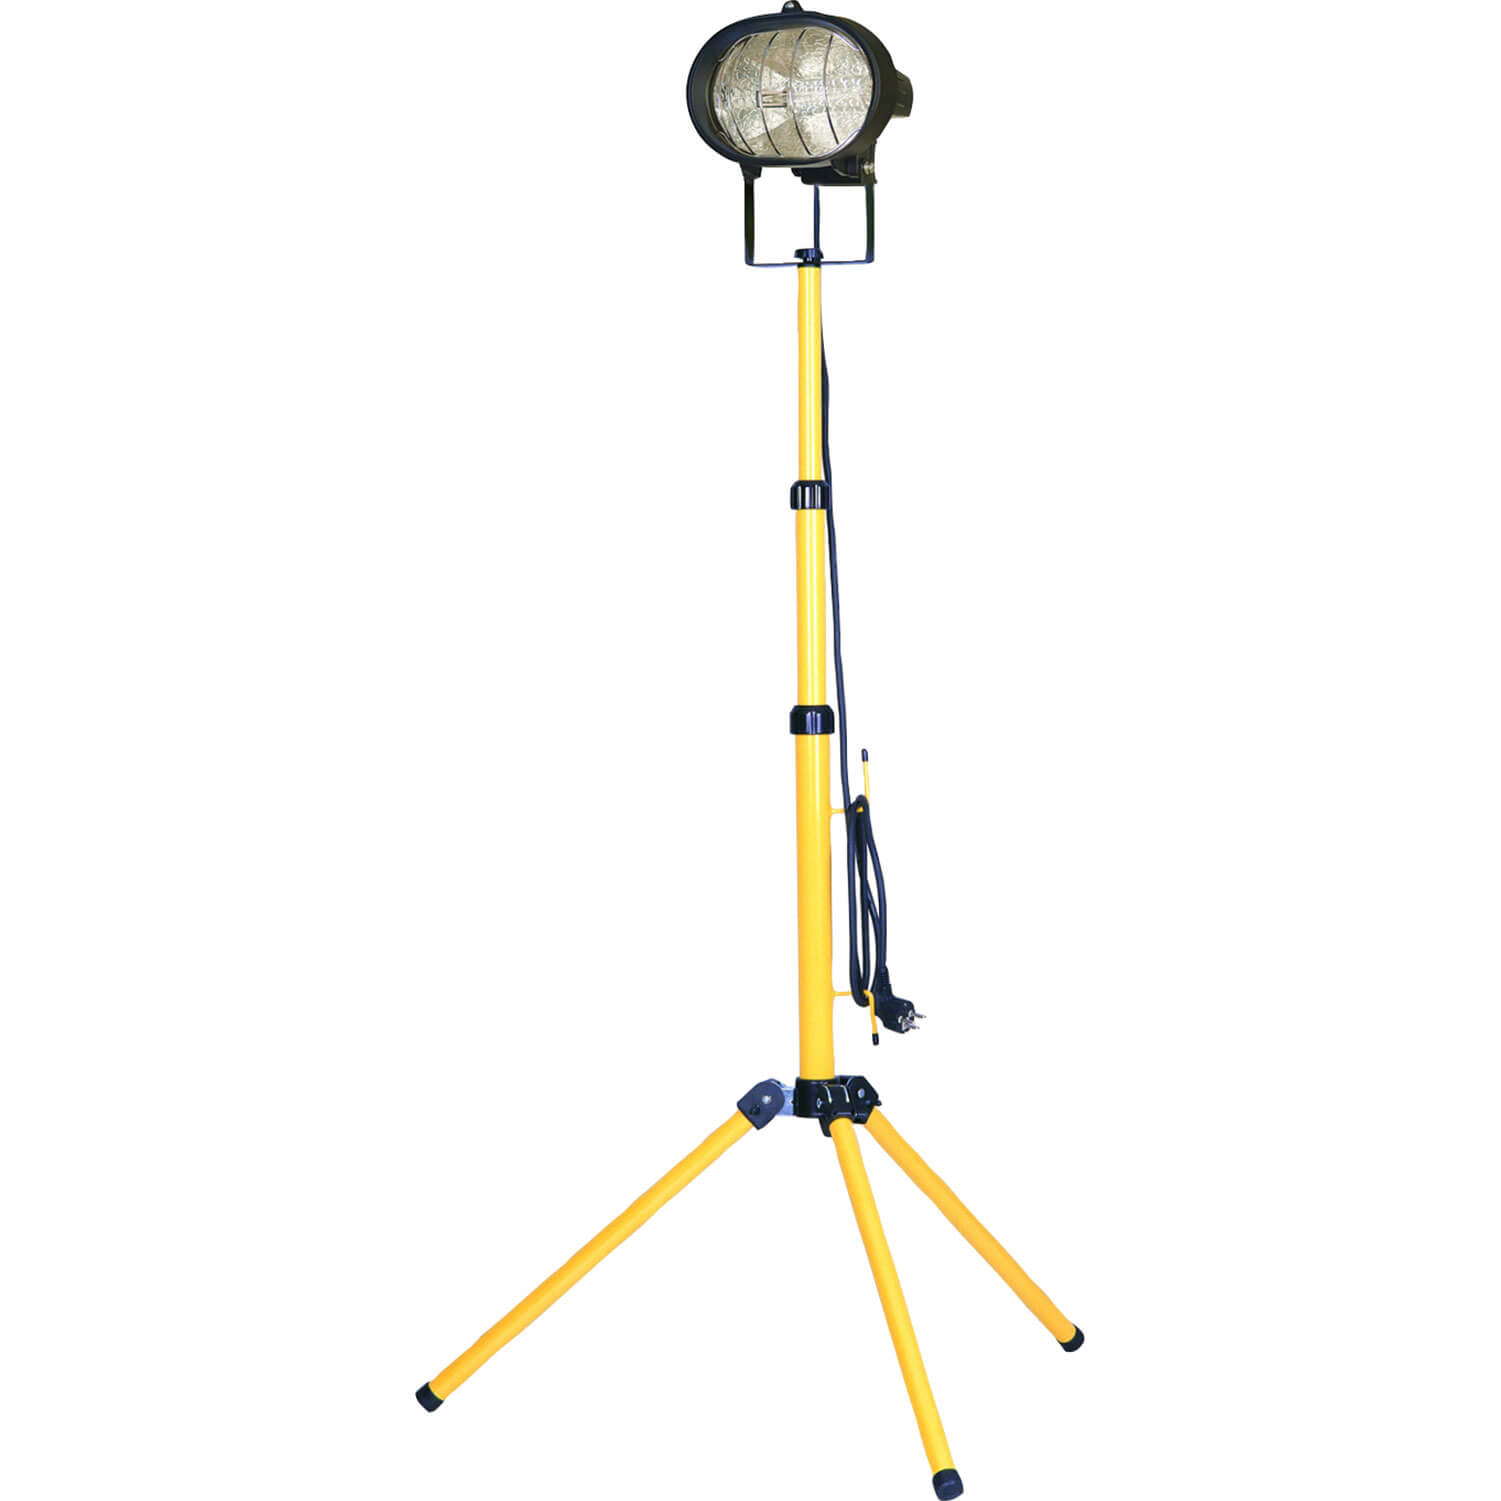 Image of Faithfull Halogen Single Site Light with Adjustable Stand 500w 240v